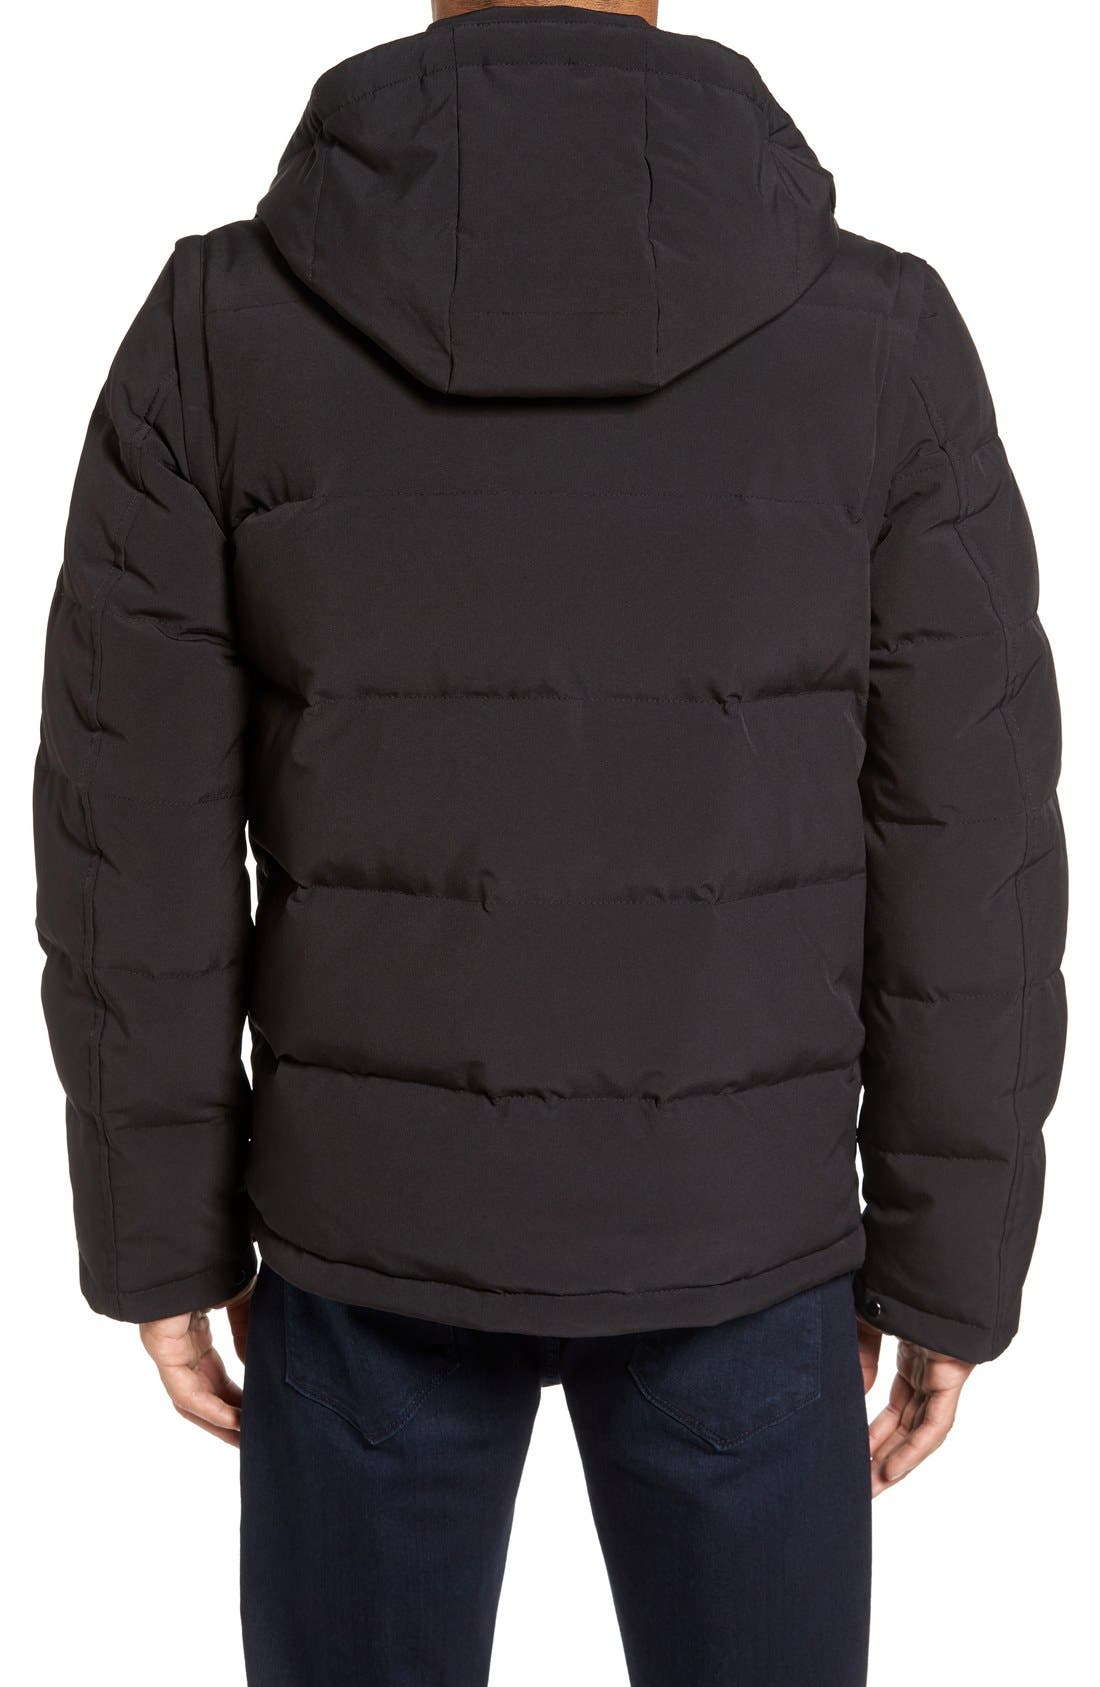 Convertible Down & Feather Puffer Jacket,                             Alternate thumbnail 2, color,                             Black